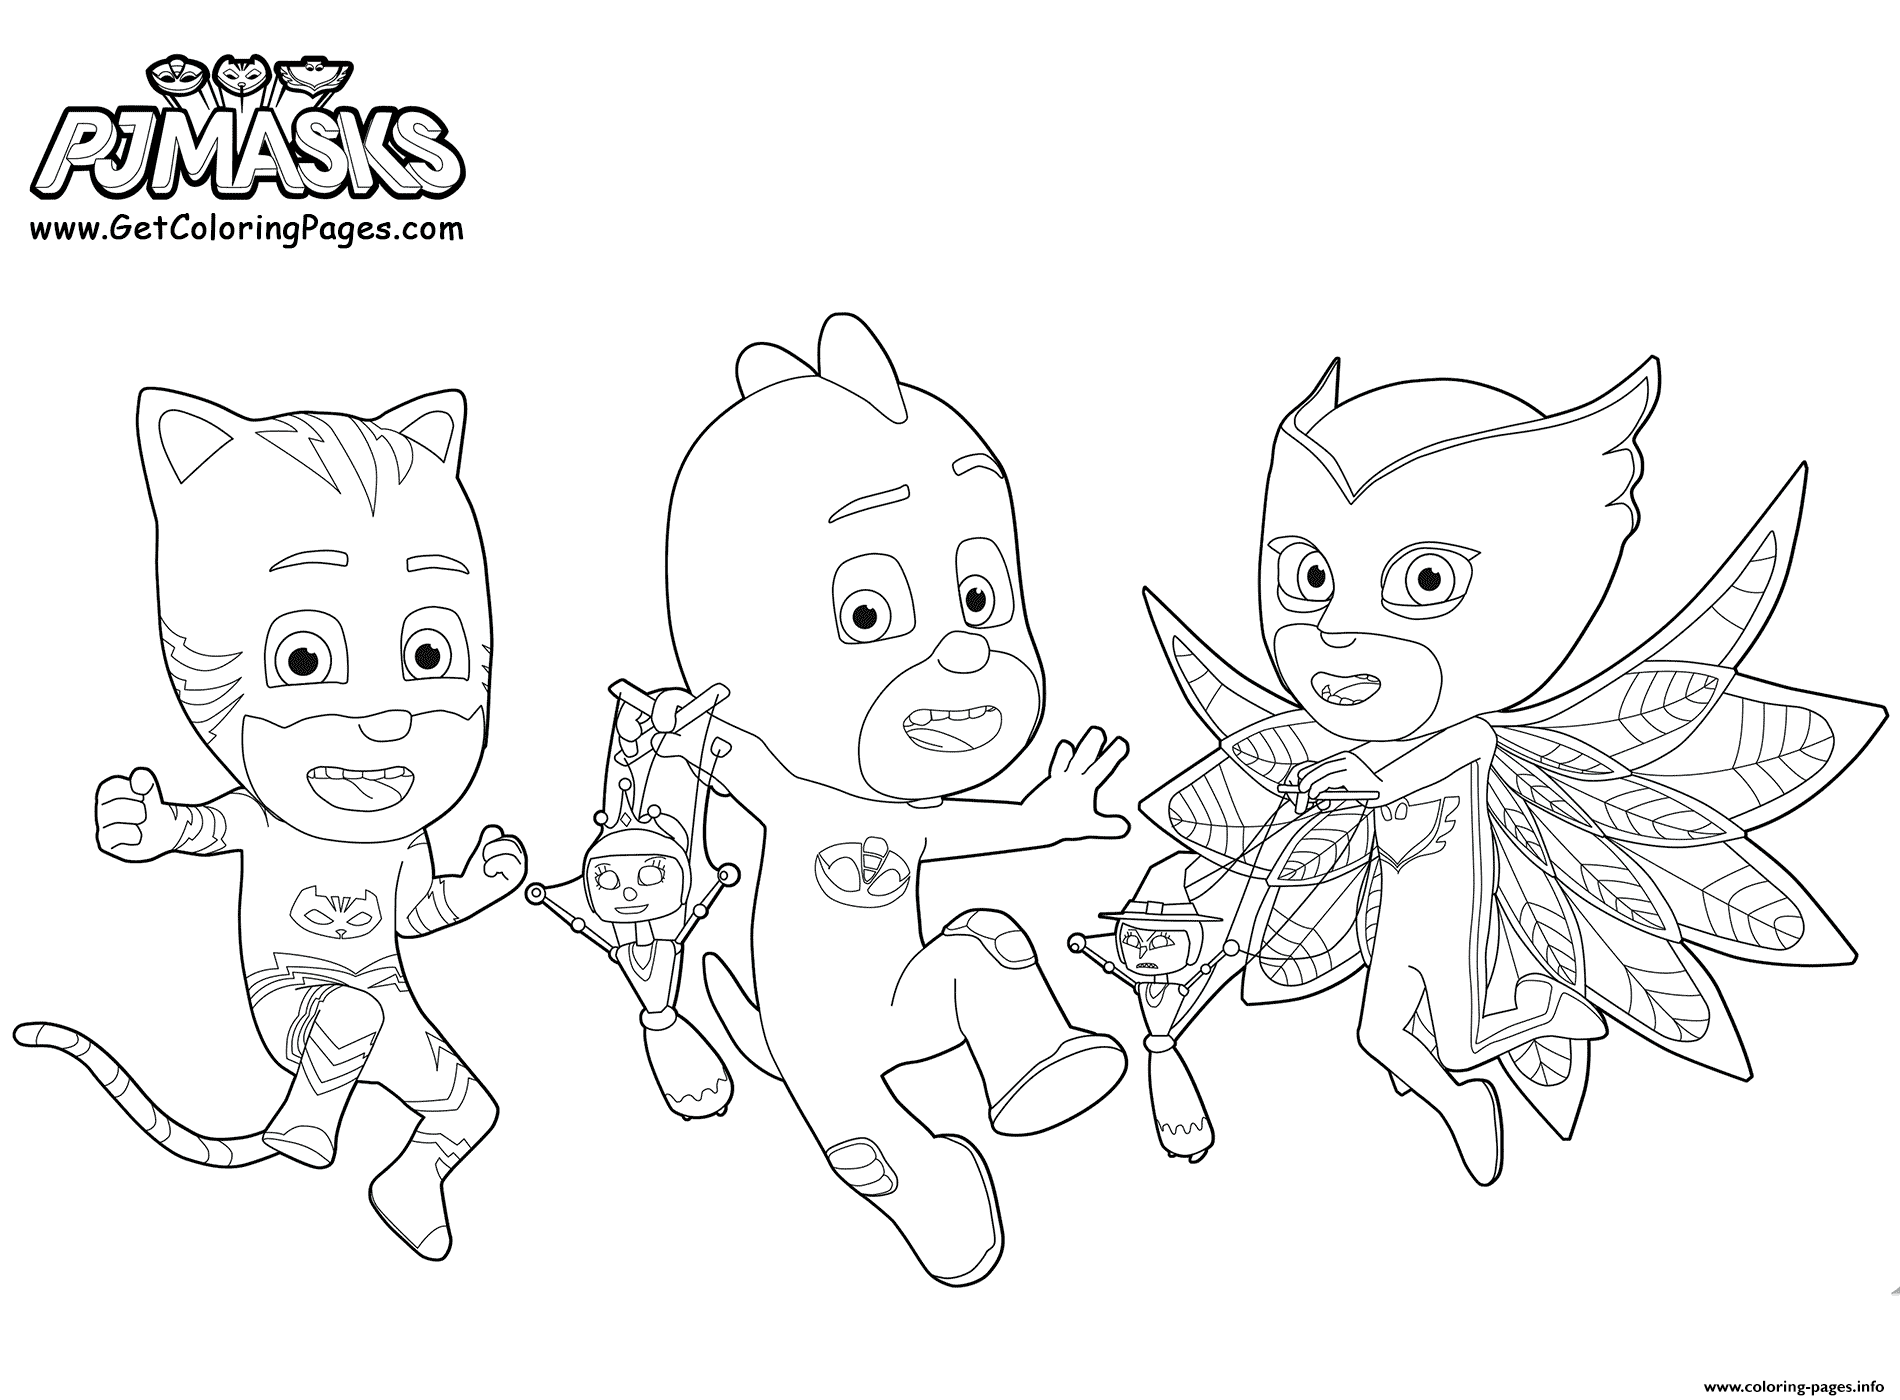 Disney pj masks coloring sheets - Coloring Pages Disney Pj Masks 32